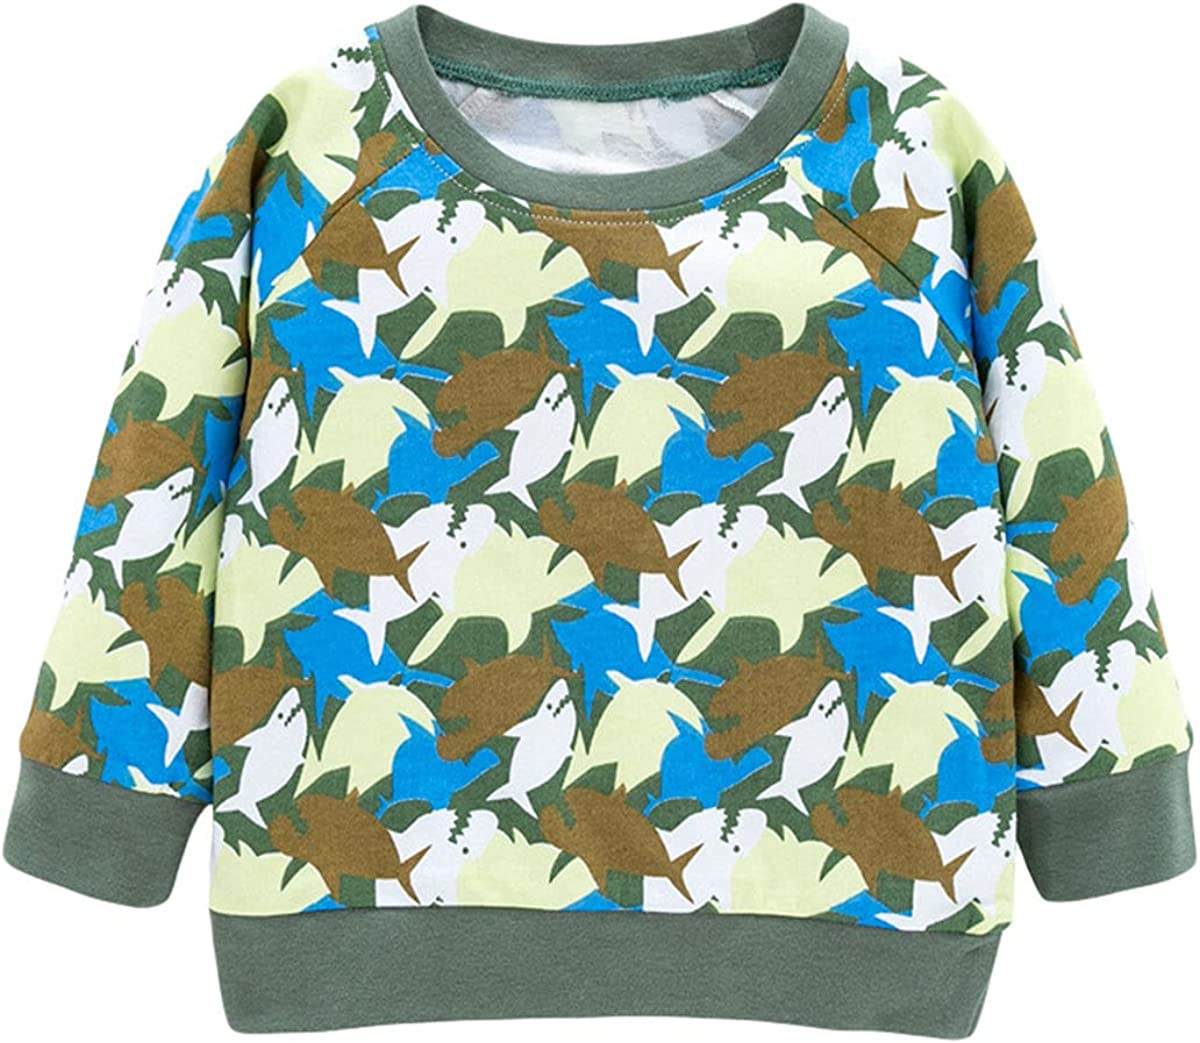 Toddler Boy's and Girl's Long-Sleeve Pullover Sweater Cartoon Graphic Playwear 2-7T